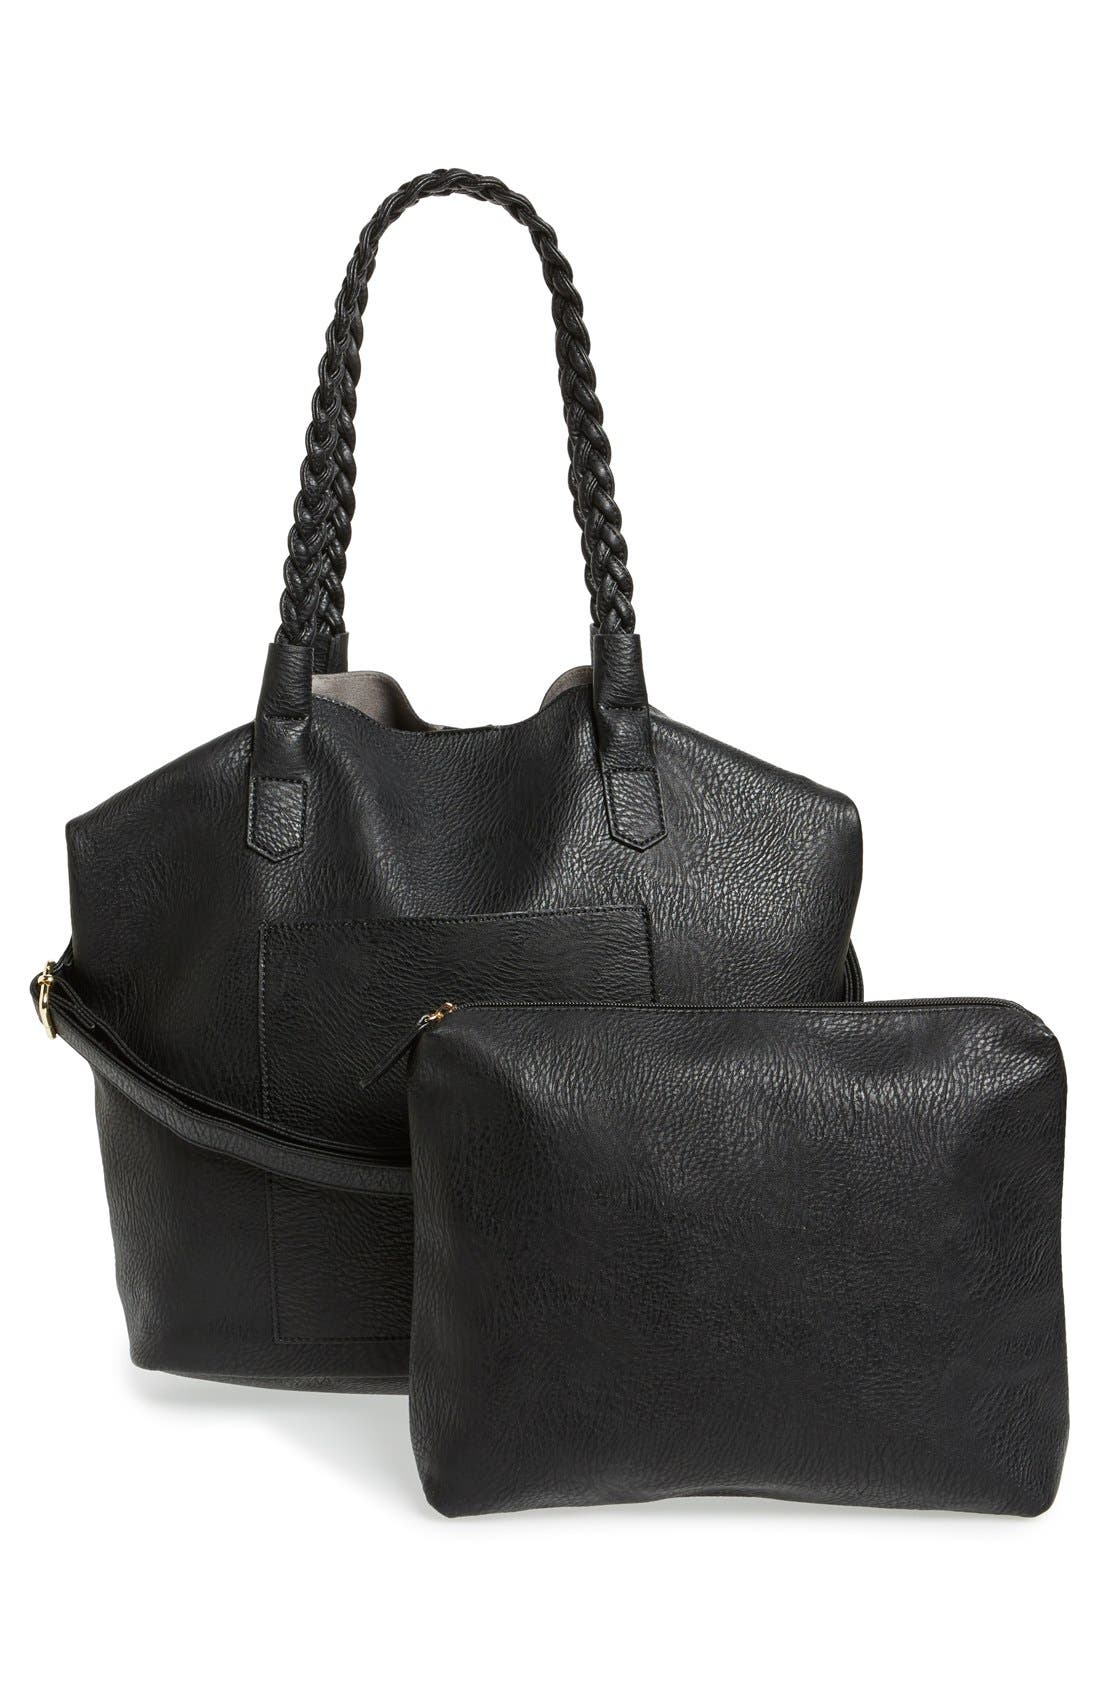 STREET LEVEL, Slouchy Faux Leather Tote with Pouch, Alternate thumbnail 7, color, 001